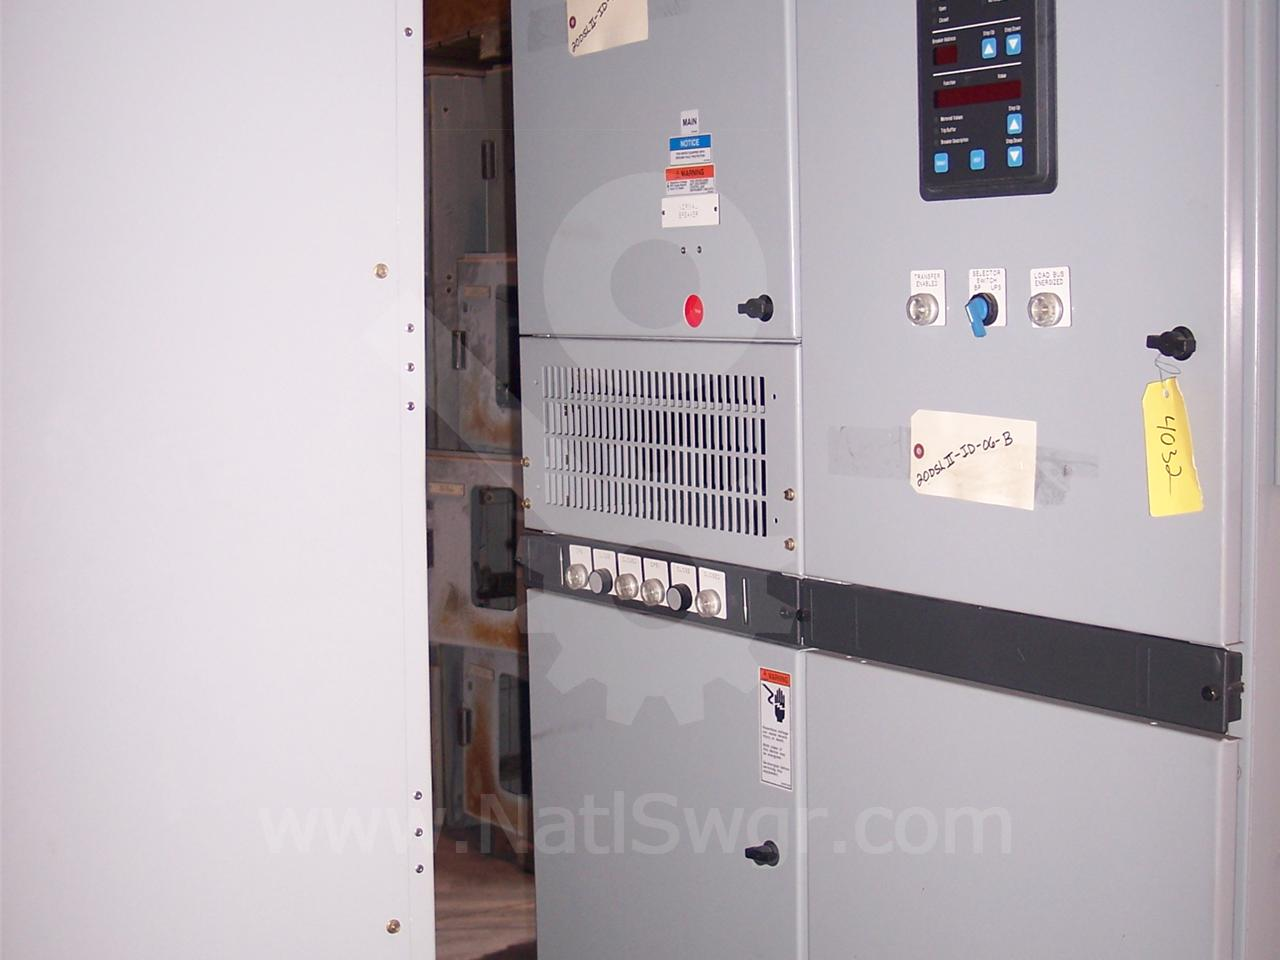 2000A Cutler-Hammer DSII FUSED INDOOR SWITCHGEAR 2-2000A FEEDER